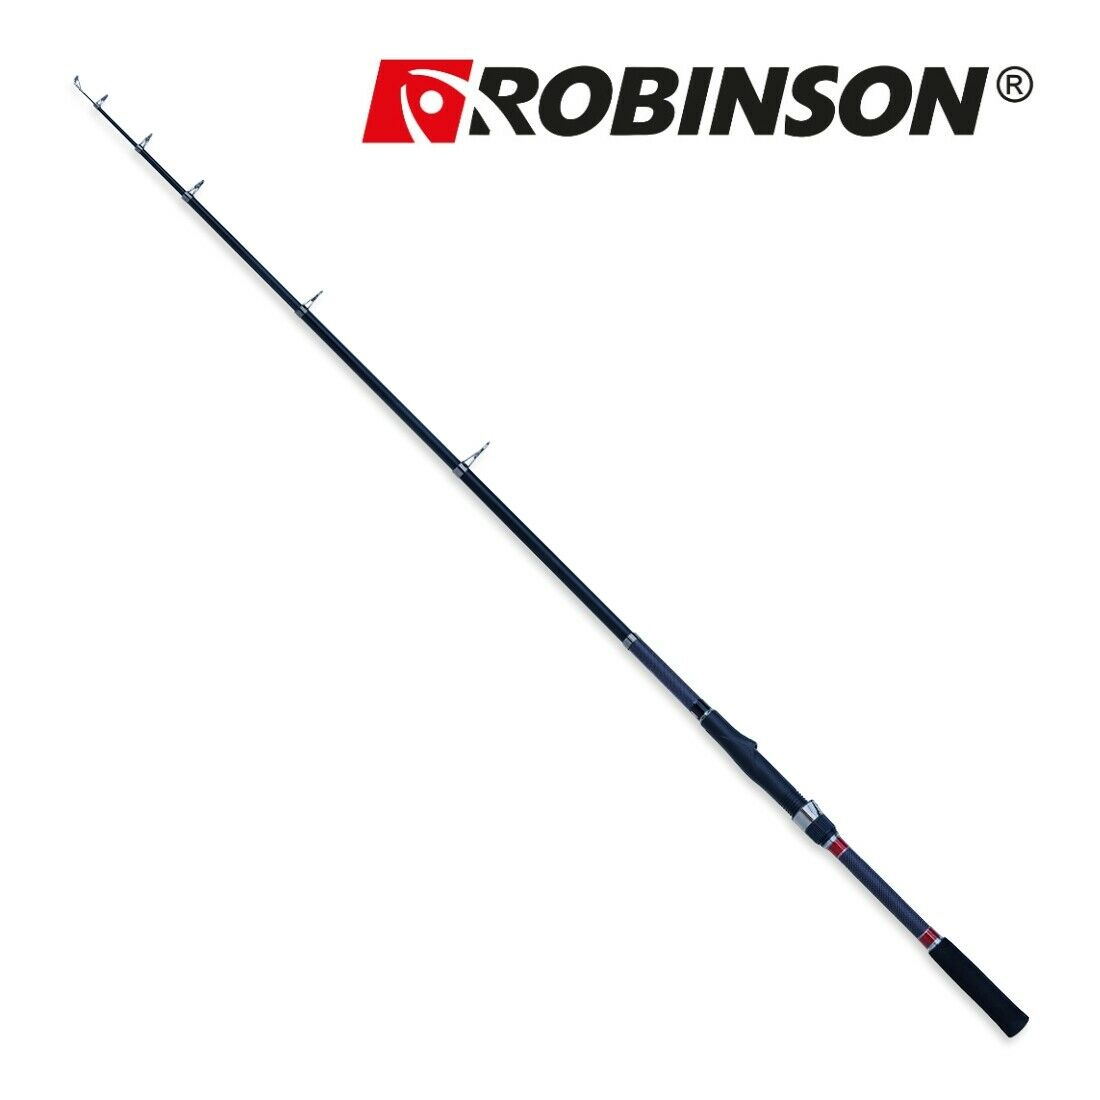 Karpfenrute Raubfischrute  ROBINSON CARBONIC T-STRONG  2,7m   315g   Wg.50-120g